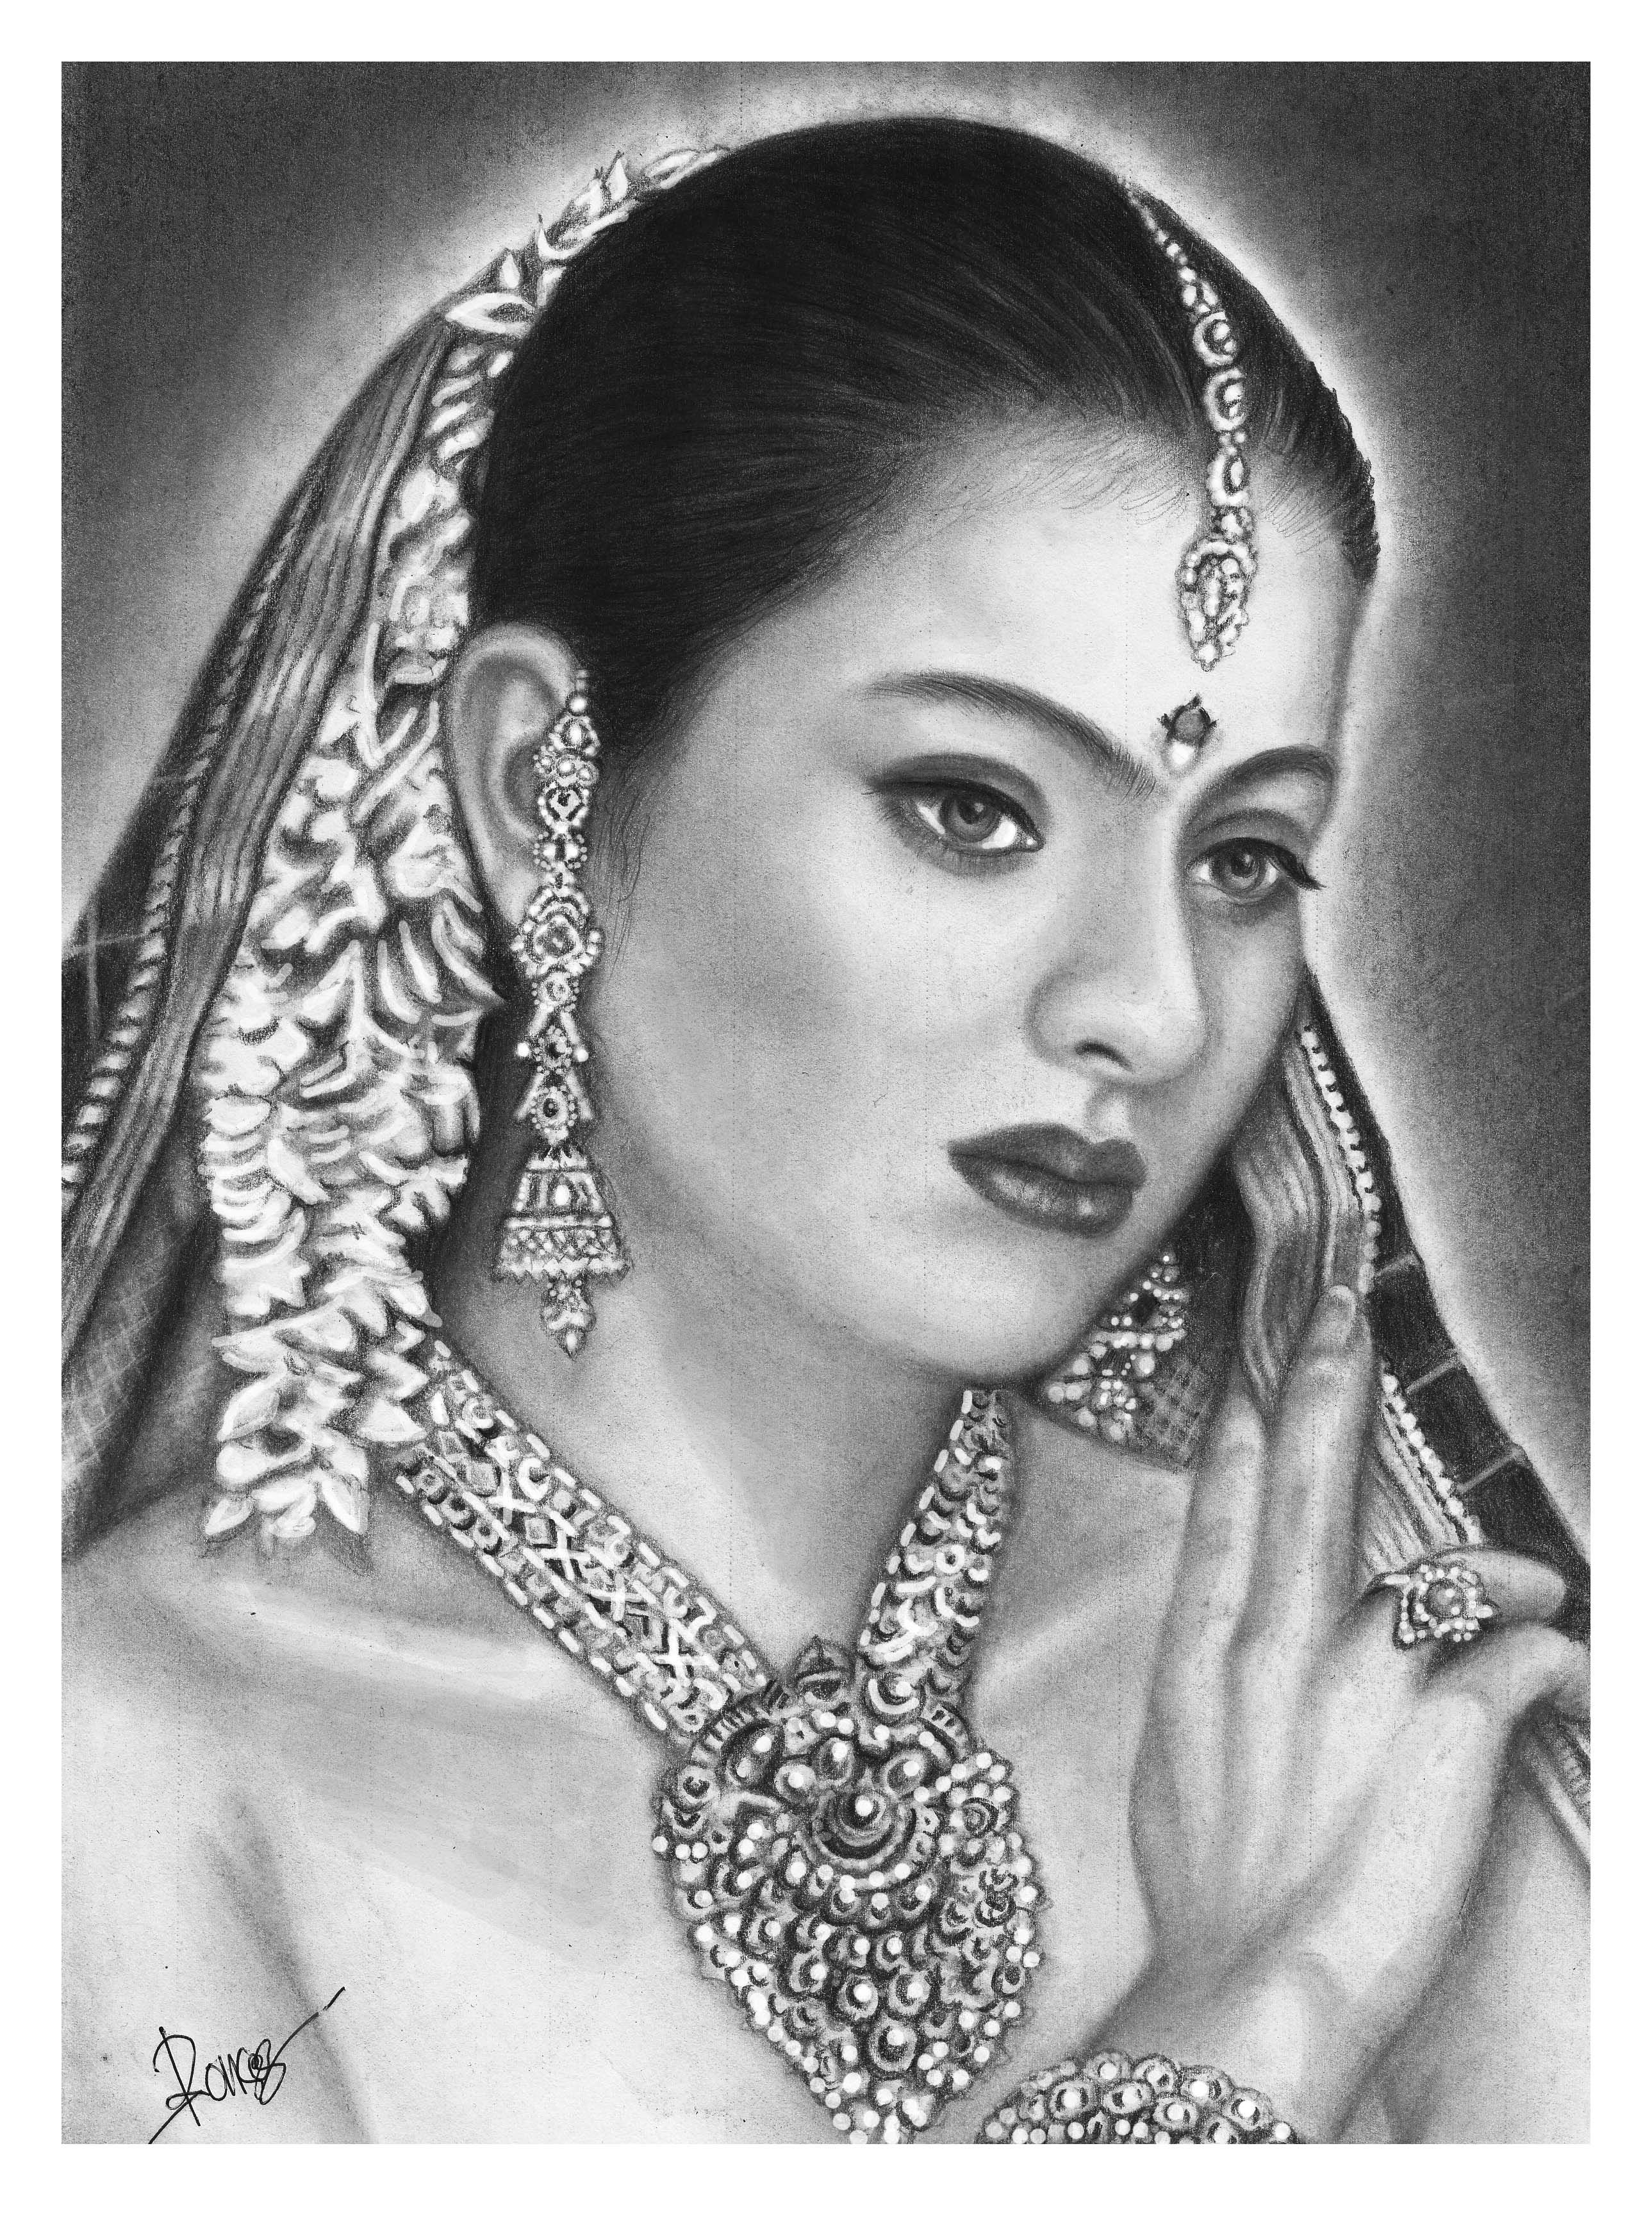 Kajol pencil art pencil drawings graphite drawings color pencil drawings crayon art